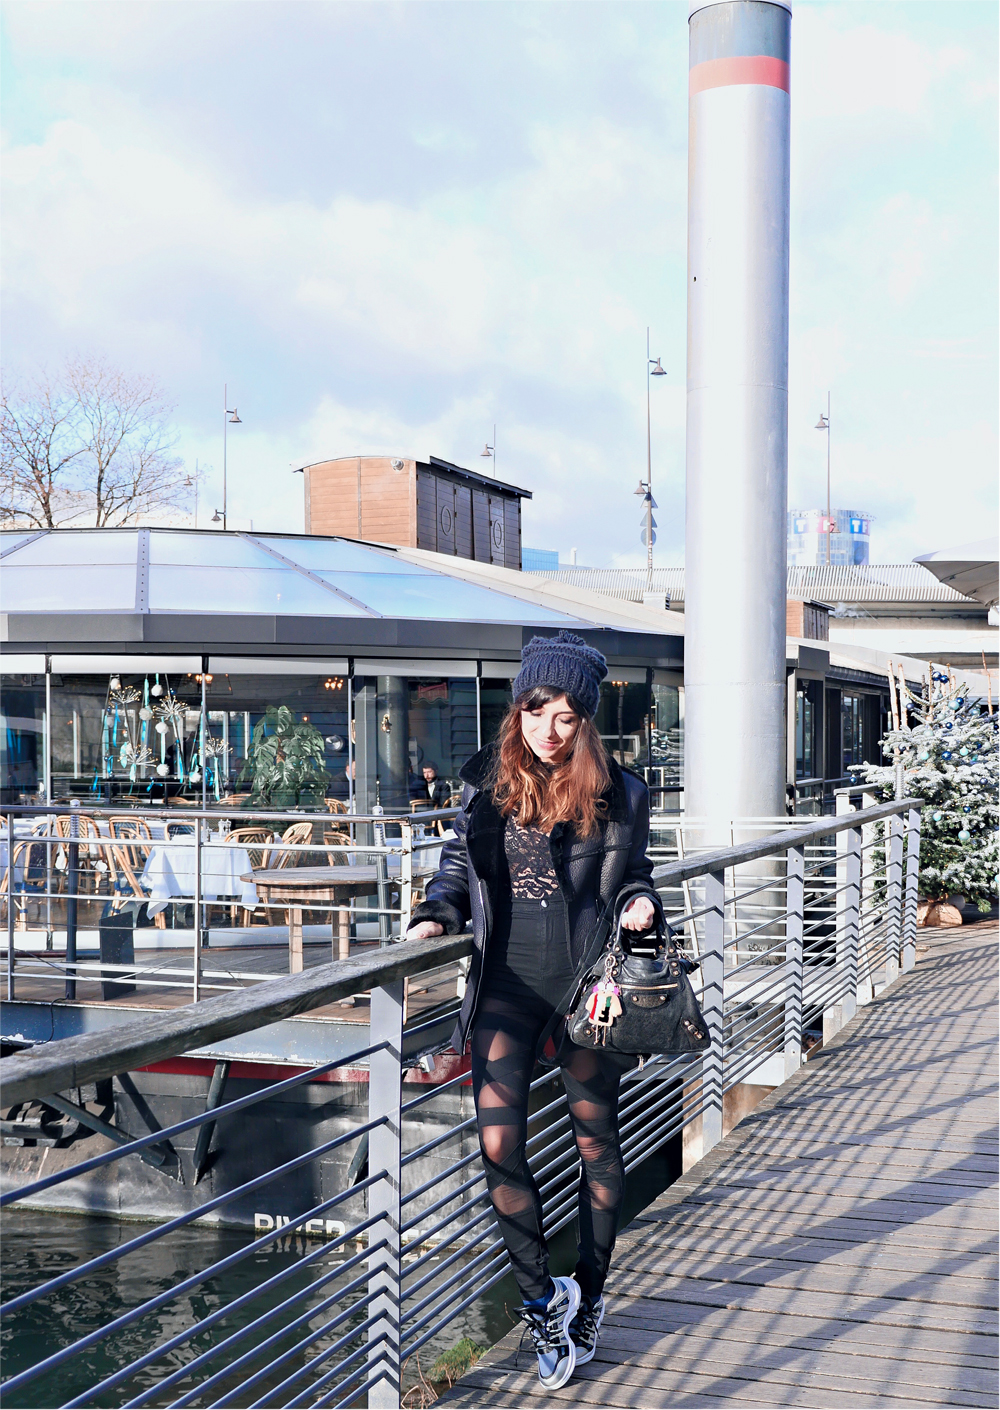 marieluvpink-blog-mode-rivers-cafe-issy-les-moulineaux-13